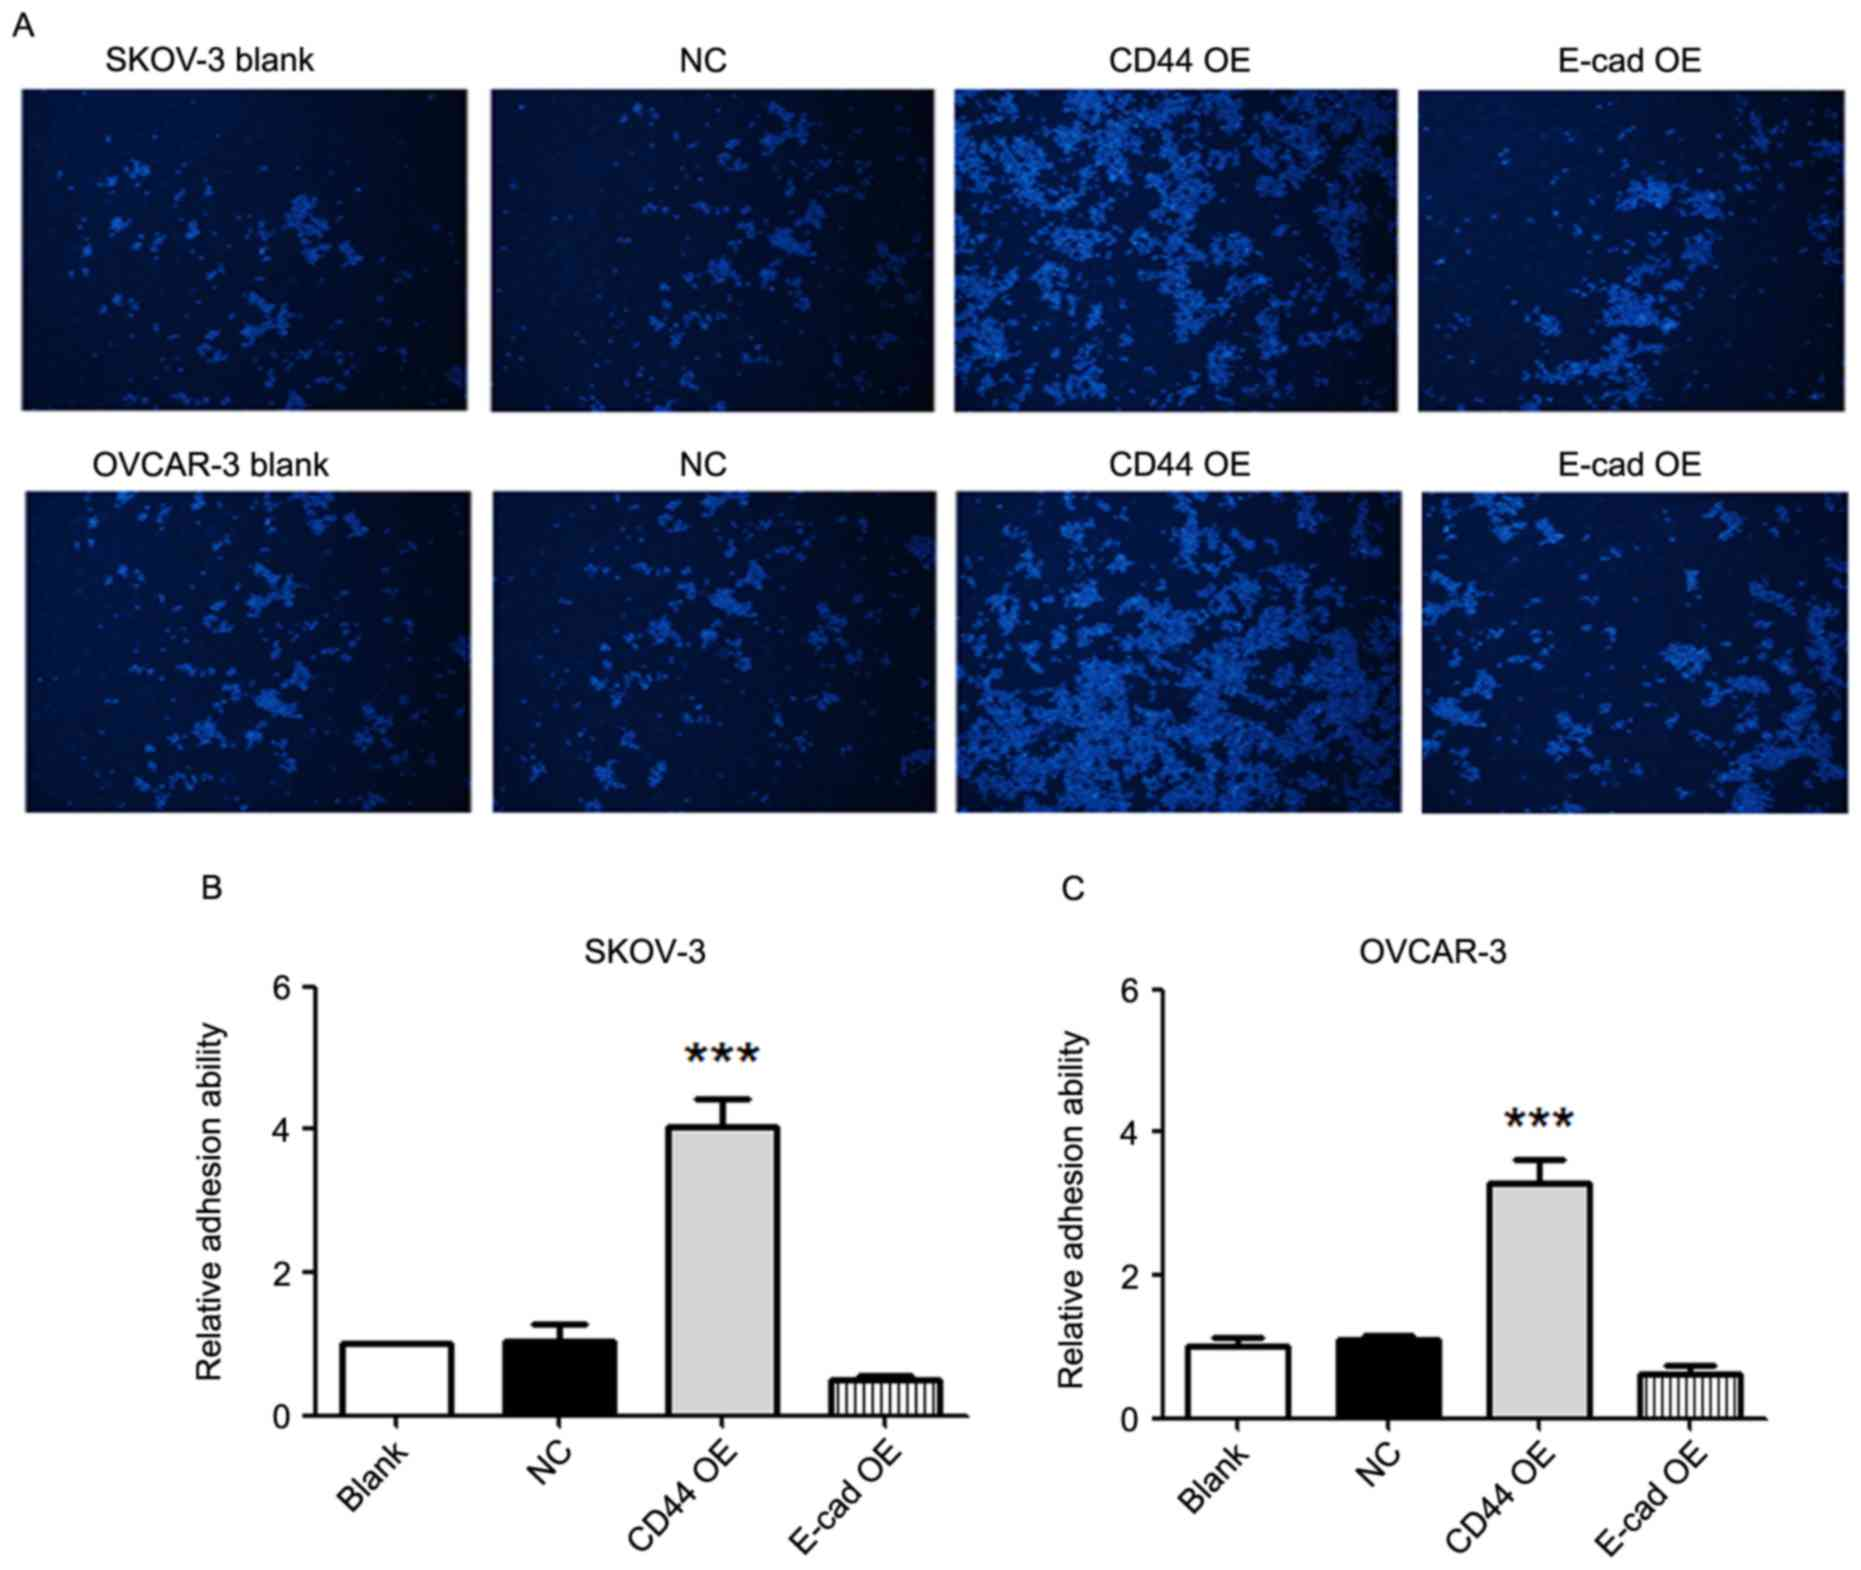 Effects of CD44 and E‑cadherin overexpression on the